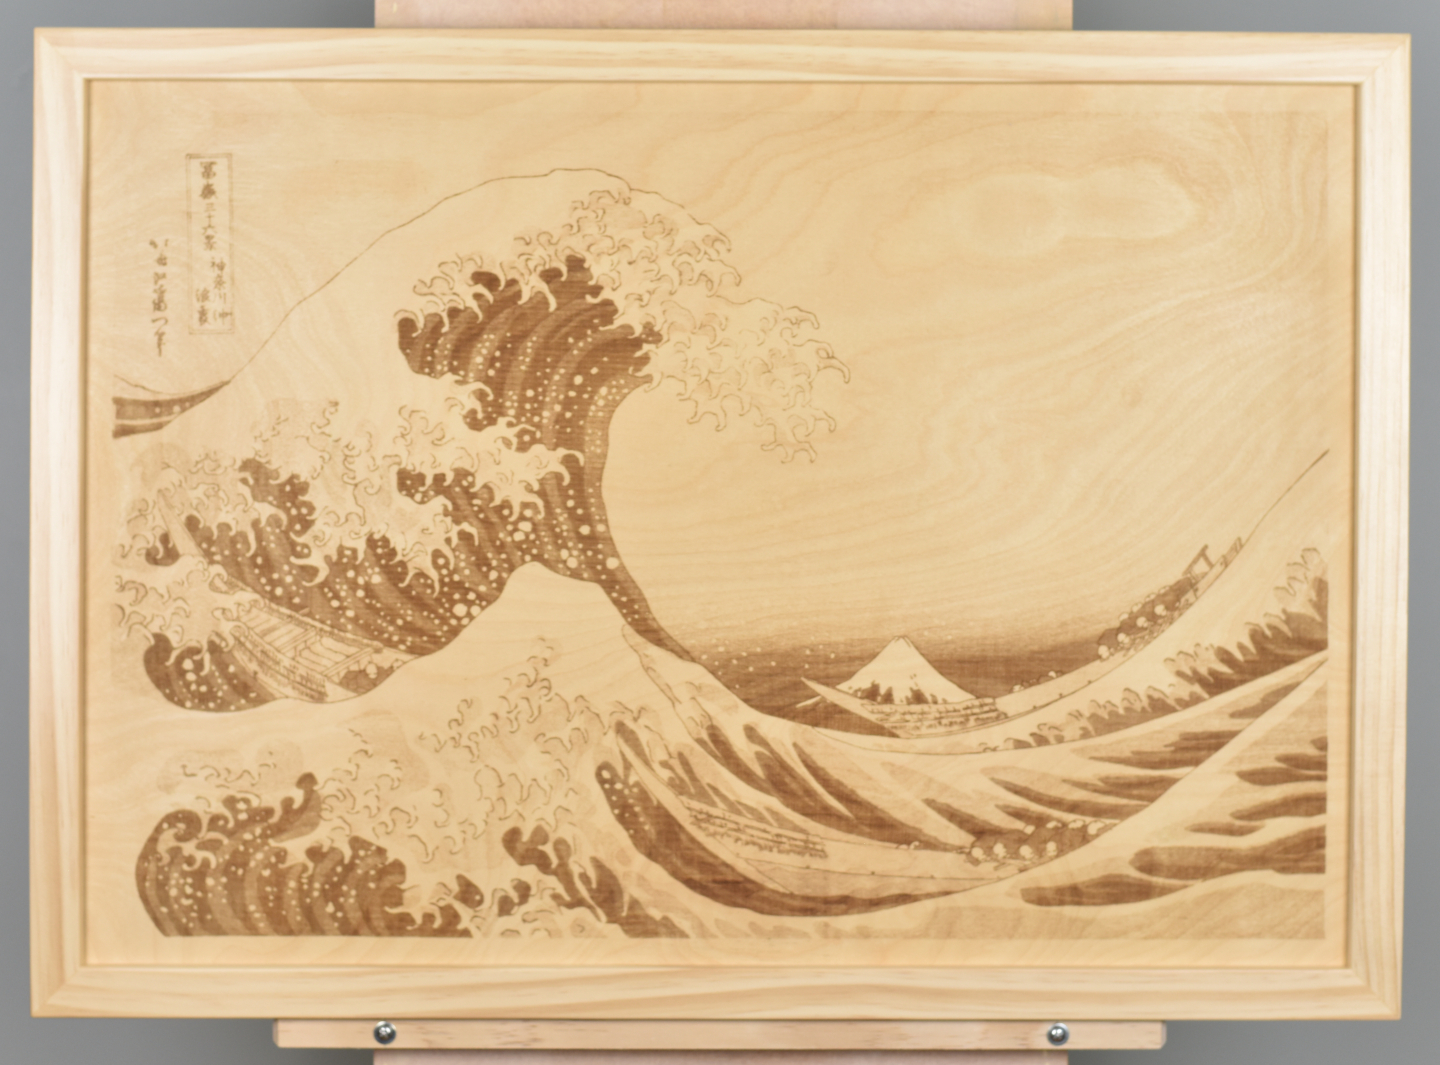 A wood burning (digital pyrograph) showing a huge wave bearing down on boats with a view of Mount Fuji in the background. One of the famous Thirty-six Views of Mount Fuji by Katsushika Hokusai.